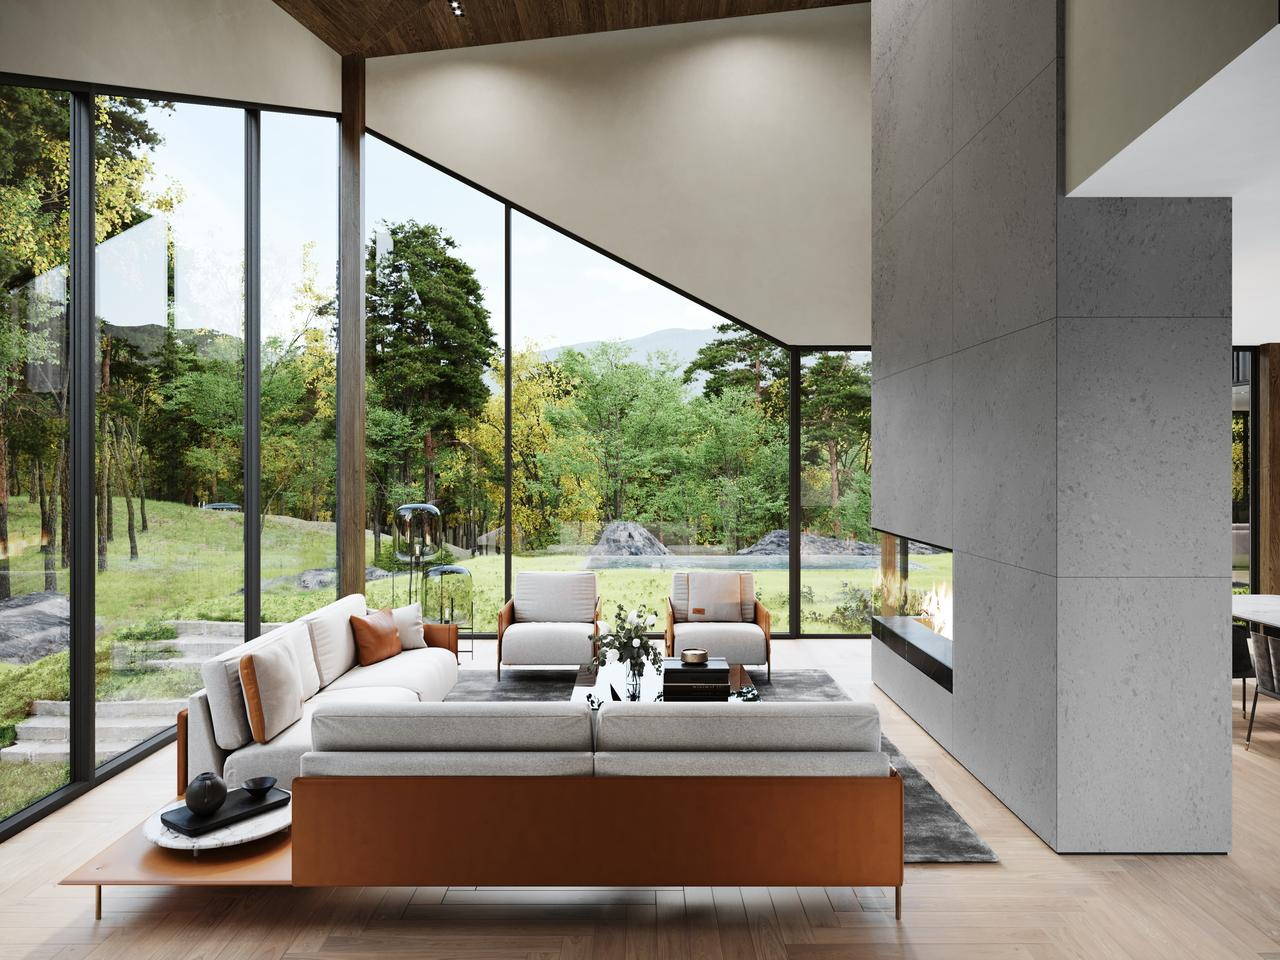 Sylvan Rock's living room will feature expansive glazing, offering views of the landscaped garden outside